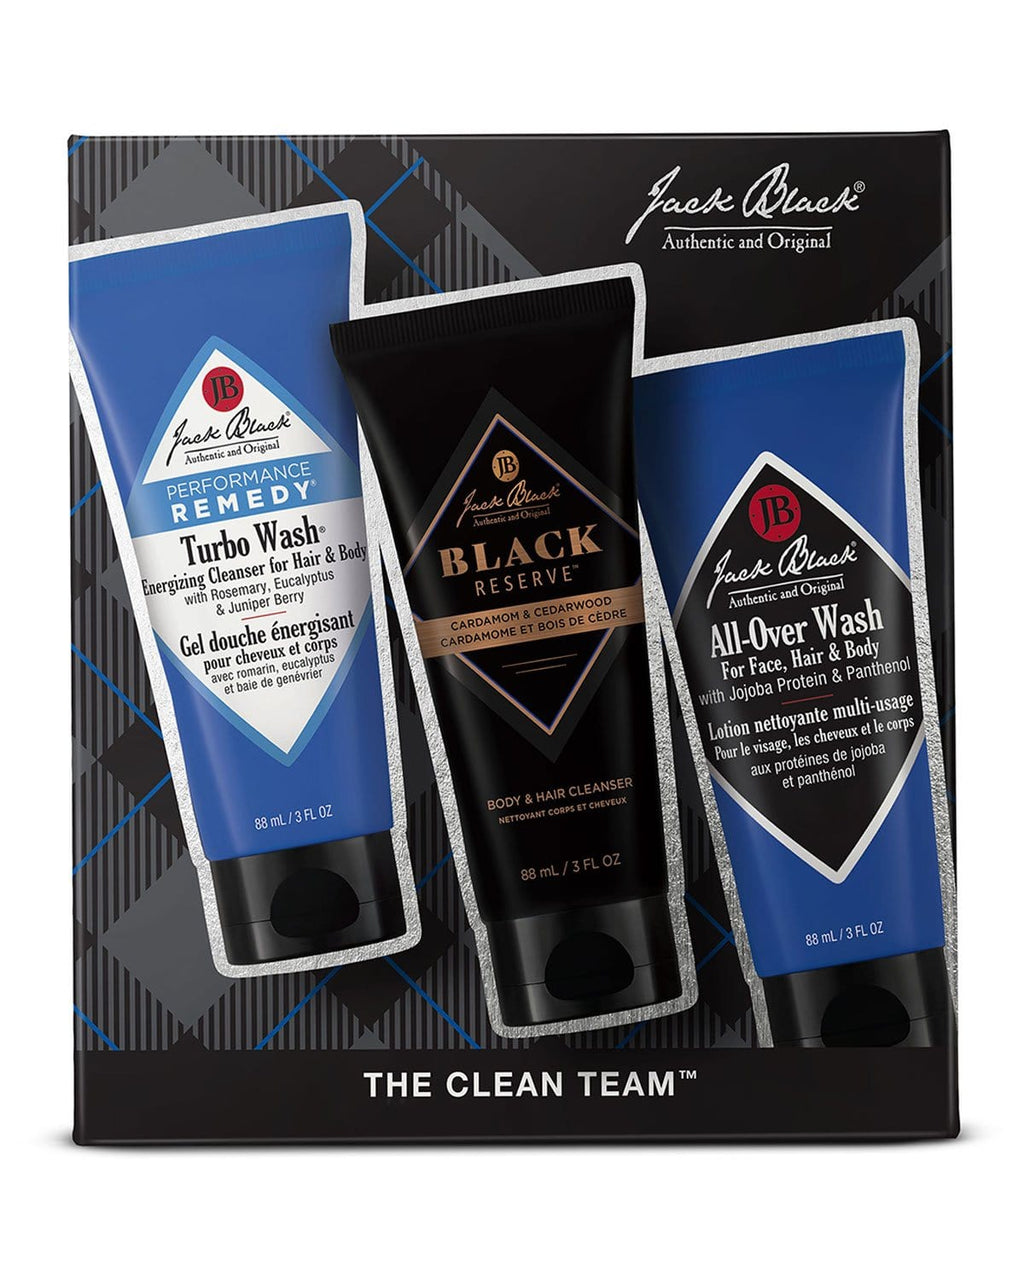 The Clean Team™ with Turbo Wash®, All-Over Wash & Black Reserve™ Cleanser